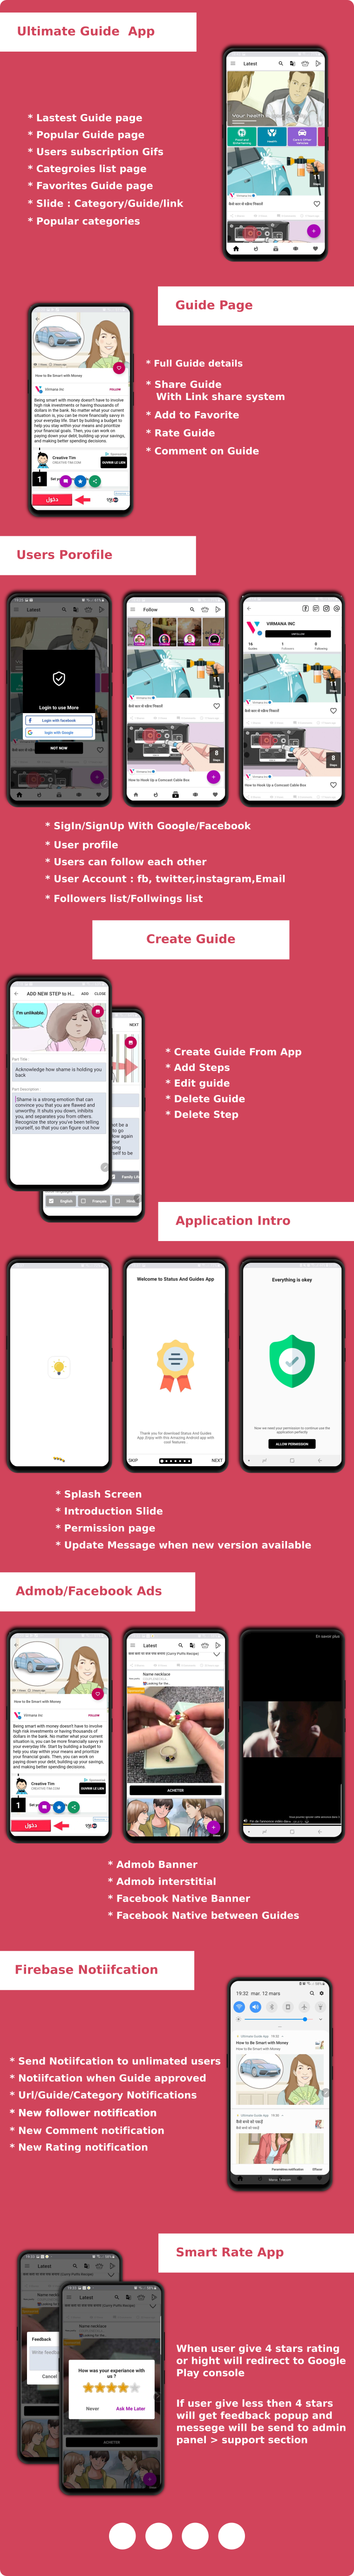 Ultimate Guide Application - 4